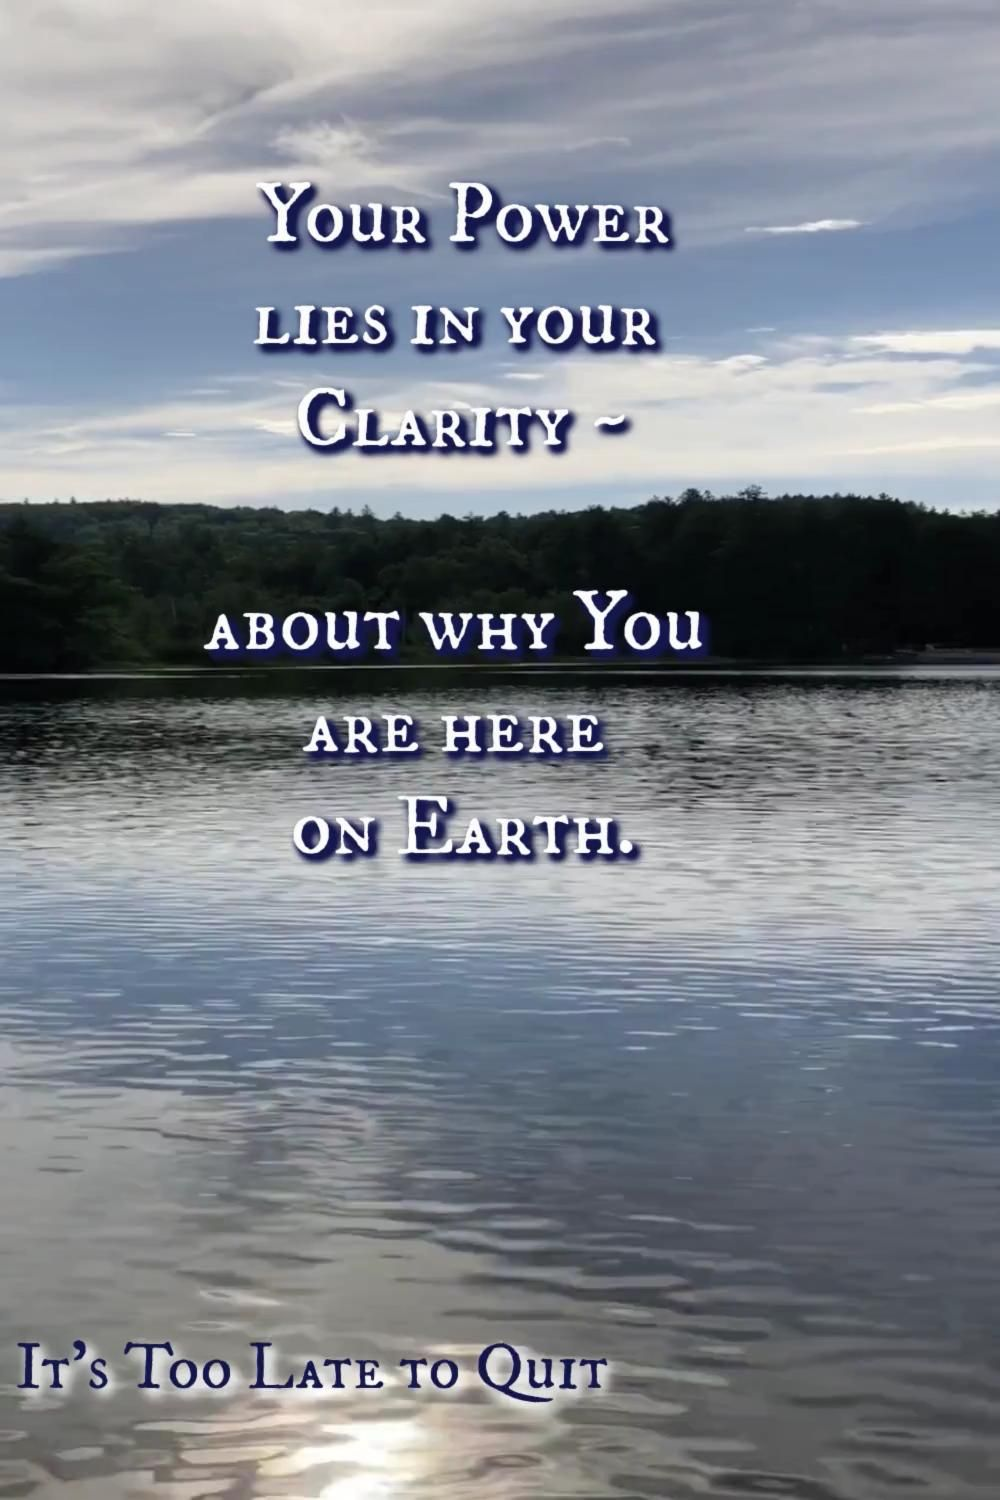 Your Power lies in your Clarity about why you are here.